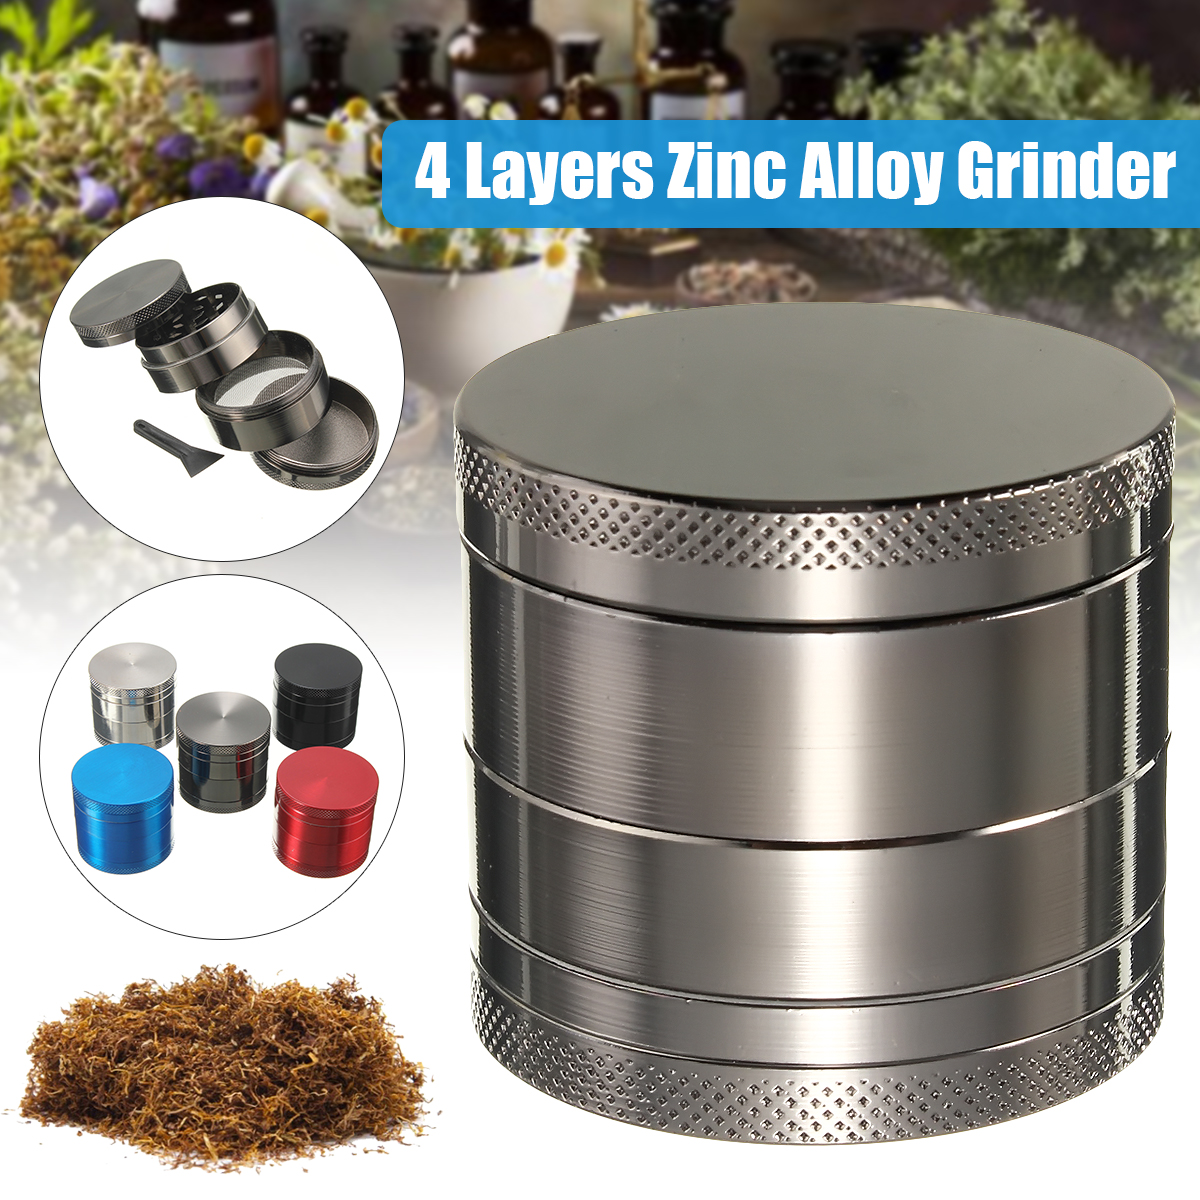 """4-Layers 1.6""""x1.4"""" Zinc Alloy Grinder Metal Spice Crusher Hand Muller Herbal Herb Gift Muticolor"""